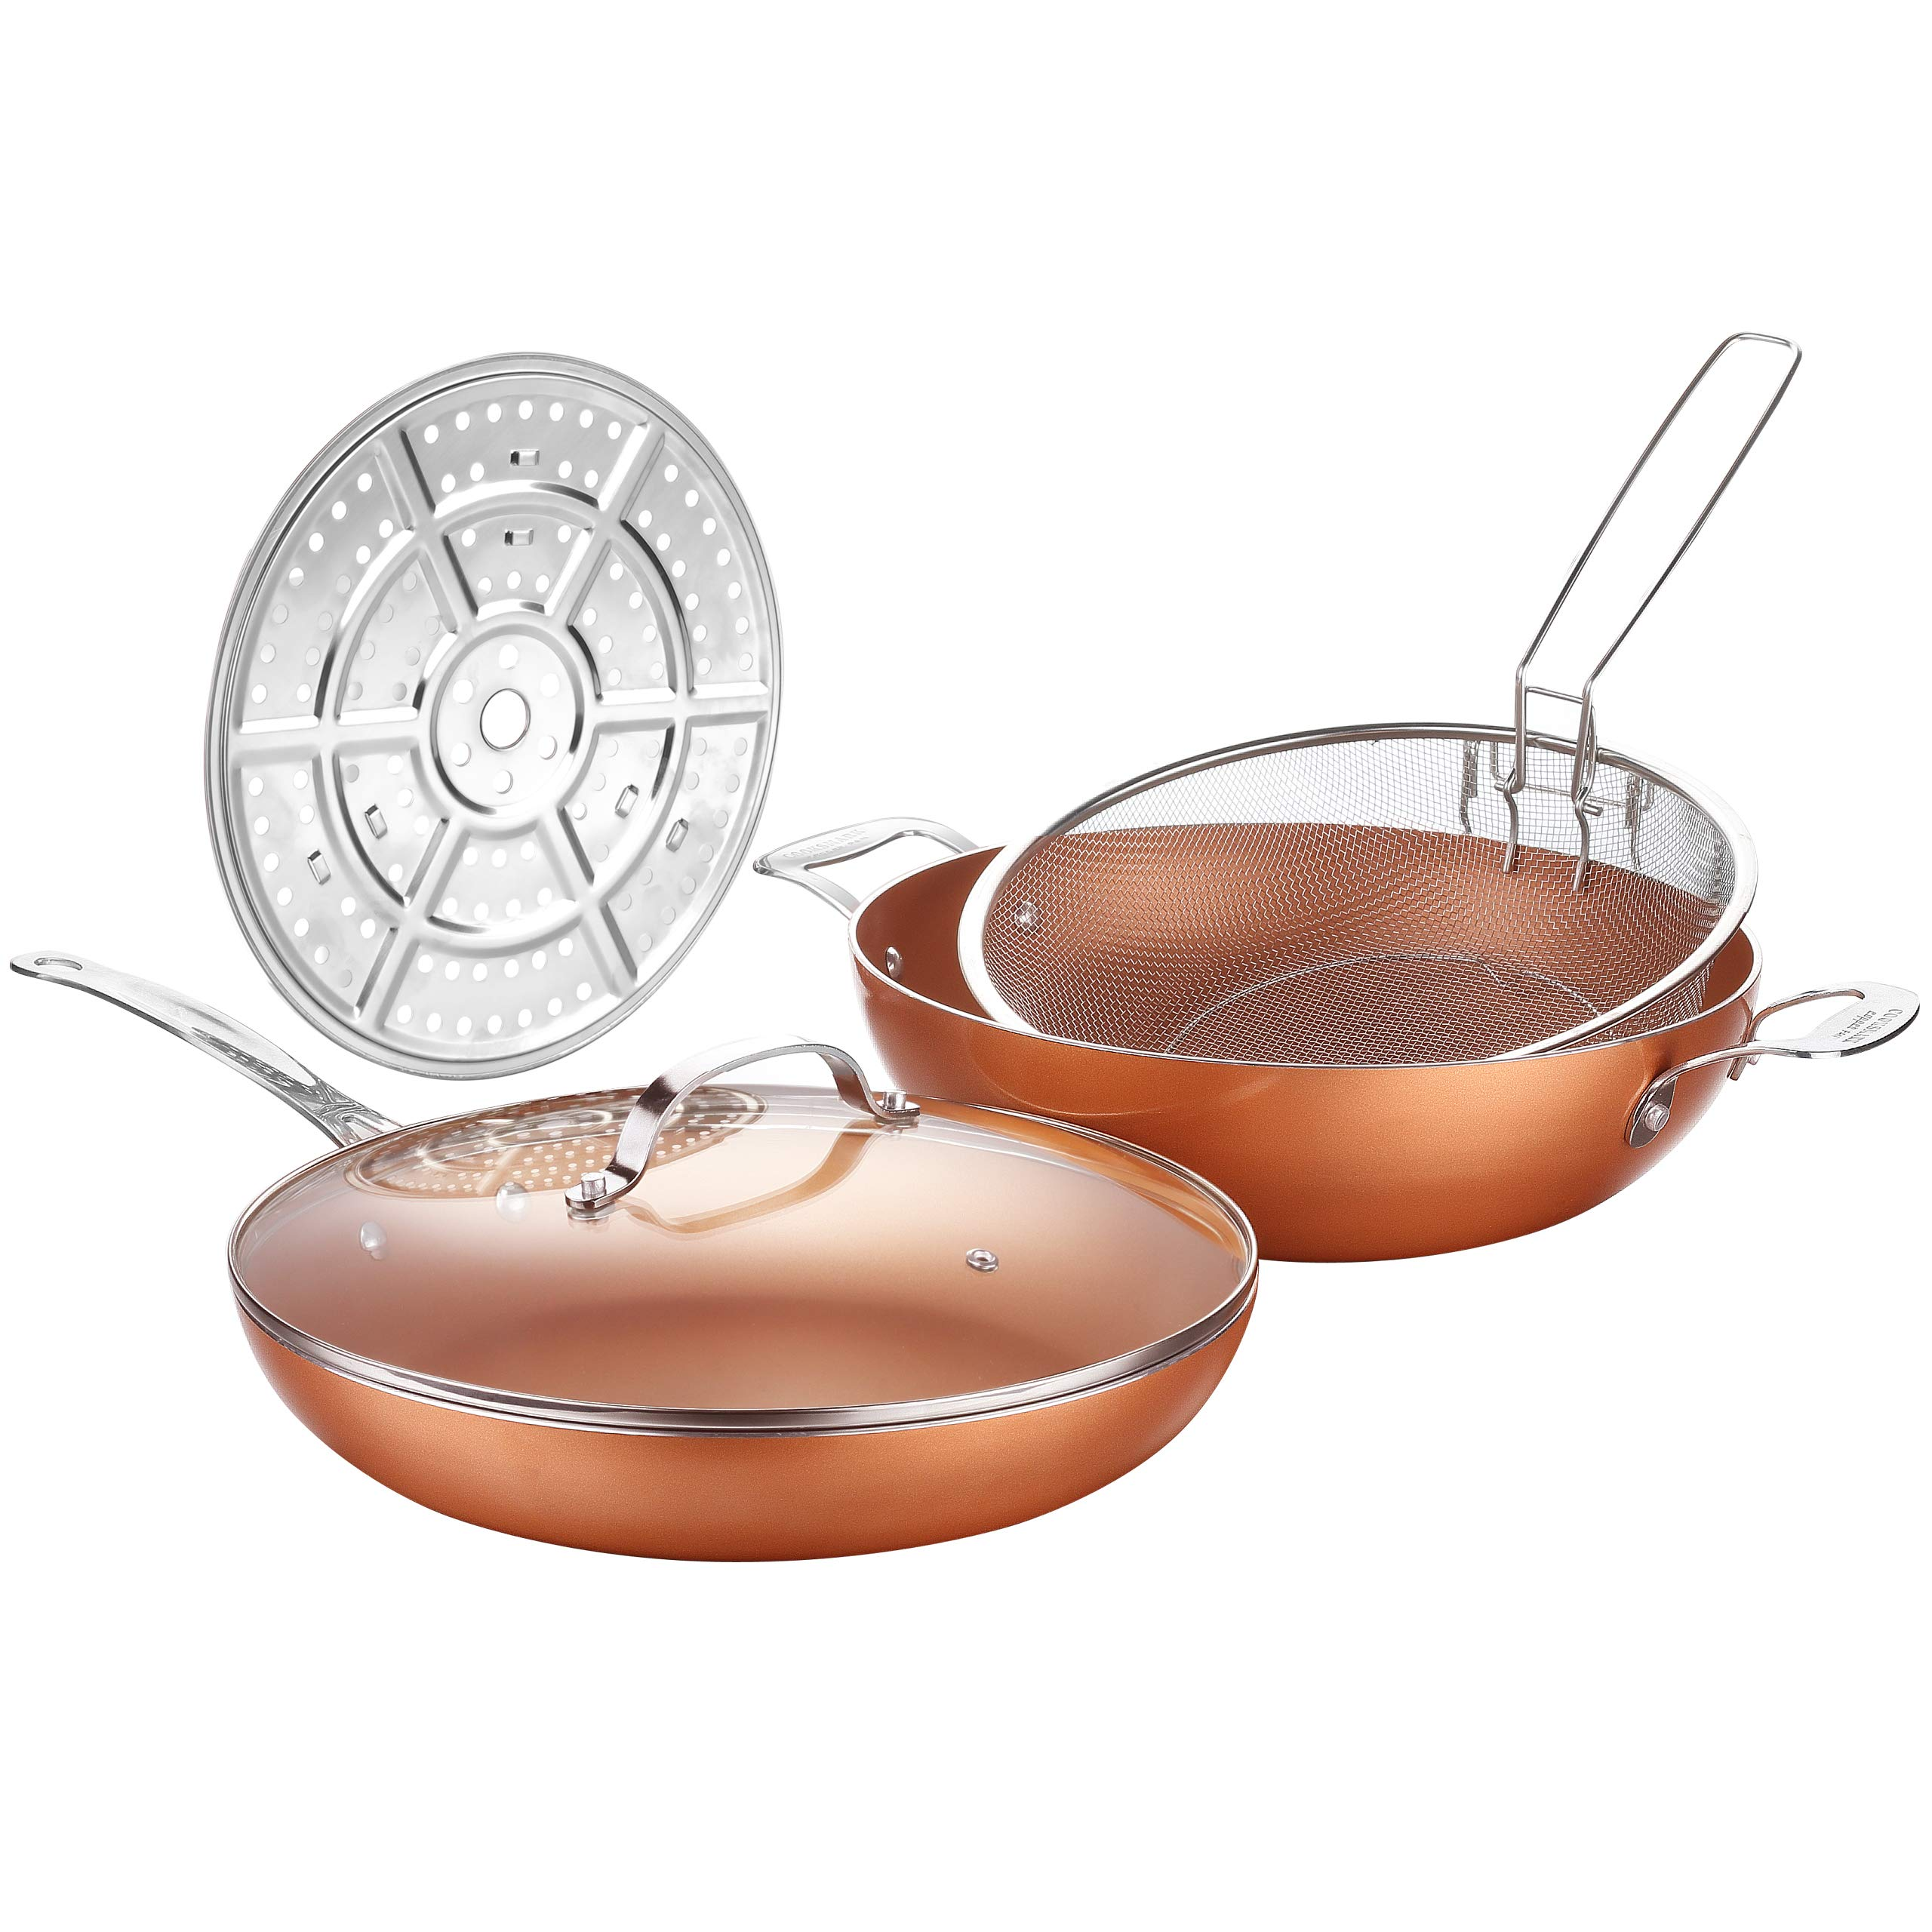 AMERICOOK 5 Piece, 12-Inch Copper, Nonstick Deep Pan, Chip Fryer Pan with Stainless Steel Basket Steamer Rack and Glass Lid, Induction Deep Fat Fryer for Oven, Roast, Bake, Grill, Steam, Oven Safe